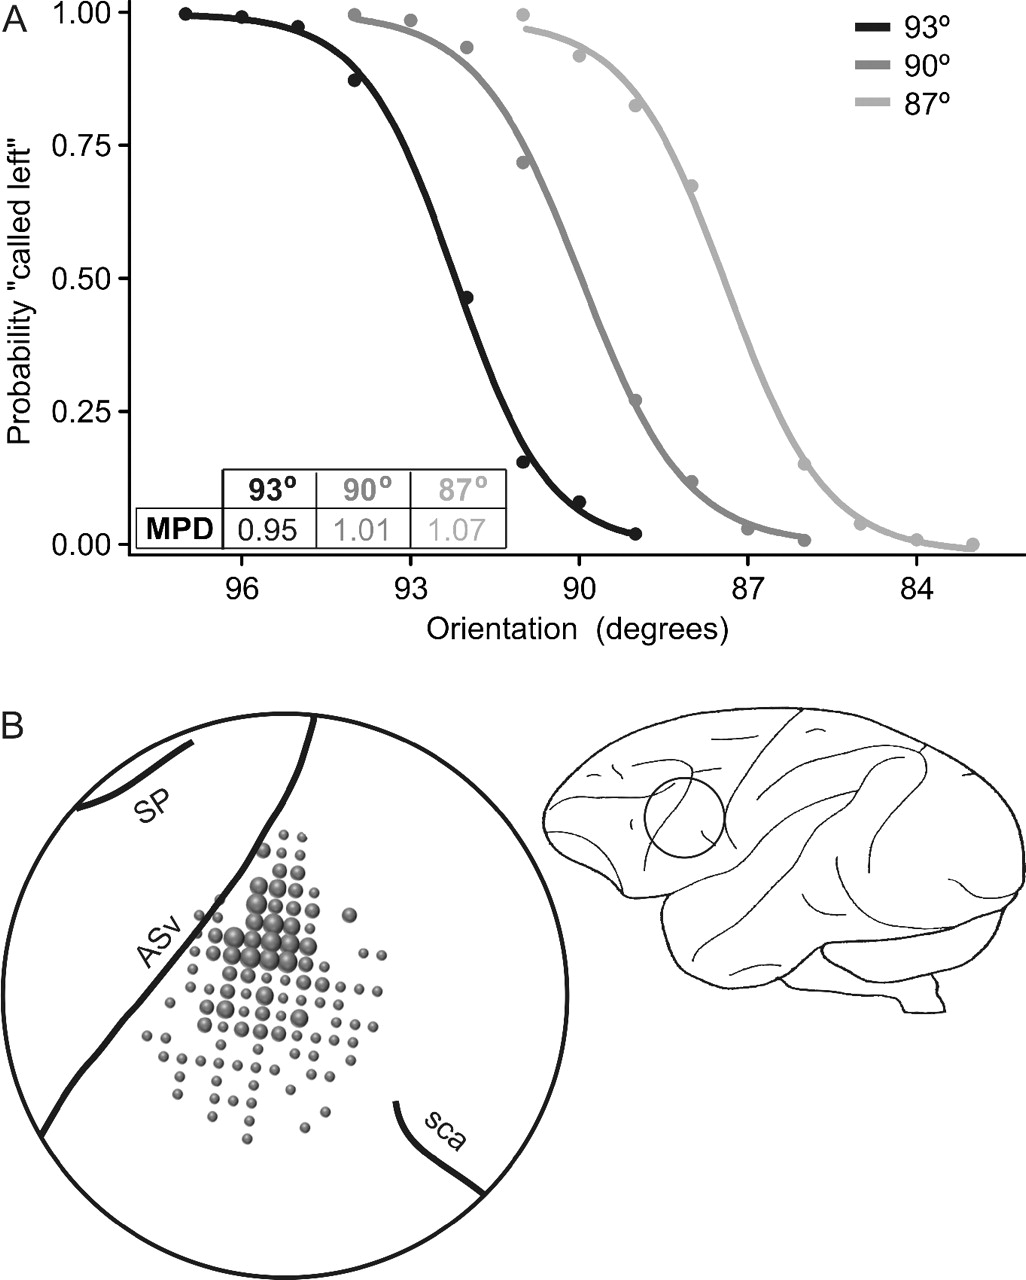 neural correlates of decisions and their out es in the ventral 2012 Acura TL download figure